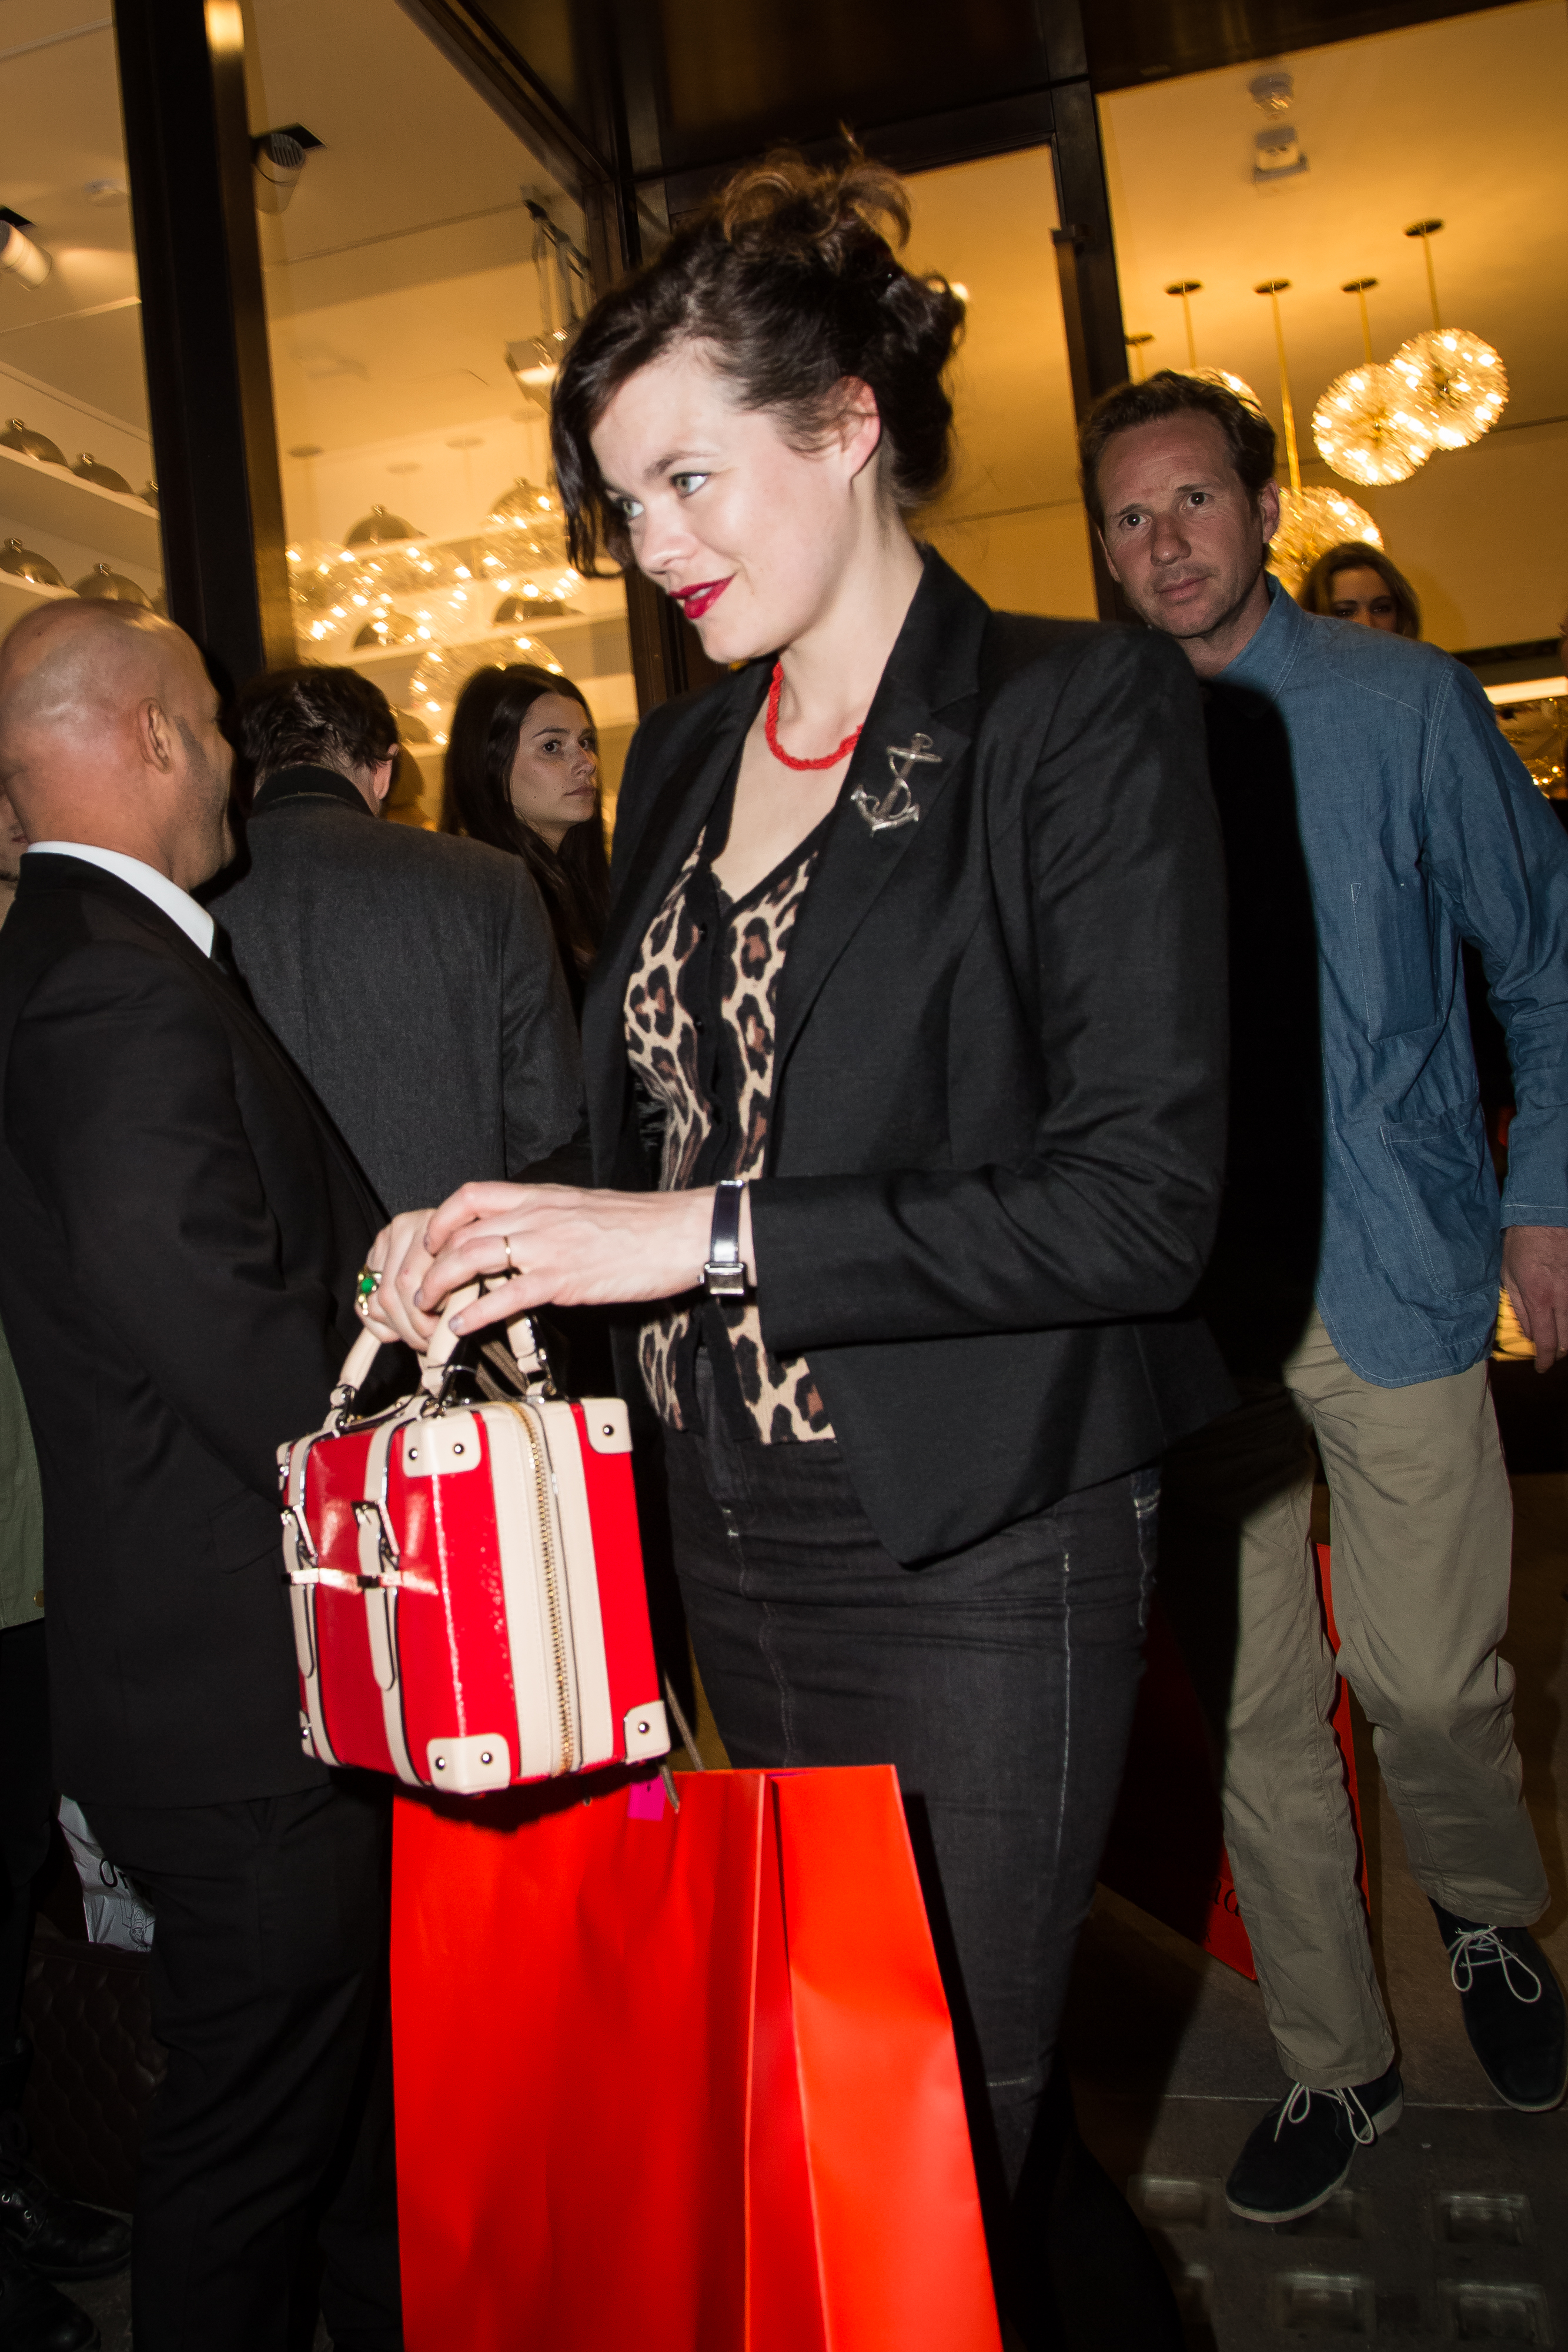 "<div class=""meta image-caption""><div class=""origin-logo origin-image ap""><span>AP</span></div><span class=""caption-text"">Jasmine Guinness leaves the Kate Spade New York flagship store opening party in London, Thursday, April 21, 2016. (Photo by Vianney Le Caer/Invision/AP) (Vianney Le Caer/Invision/AP)</span></div>"